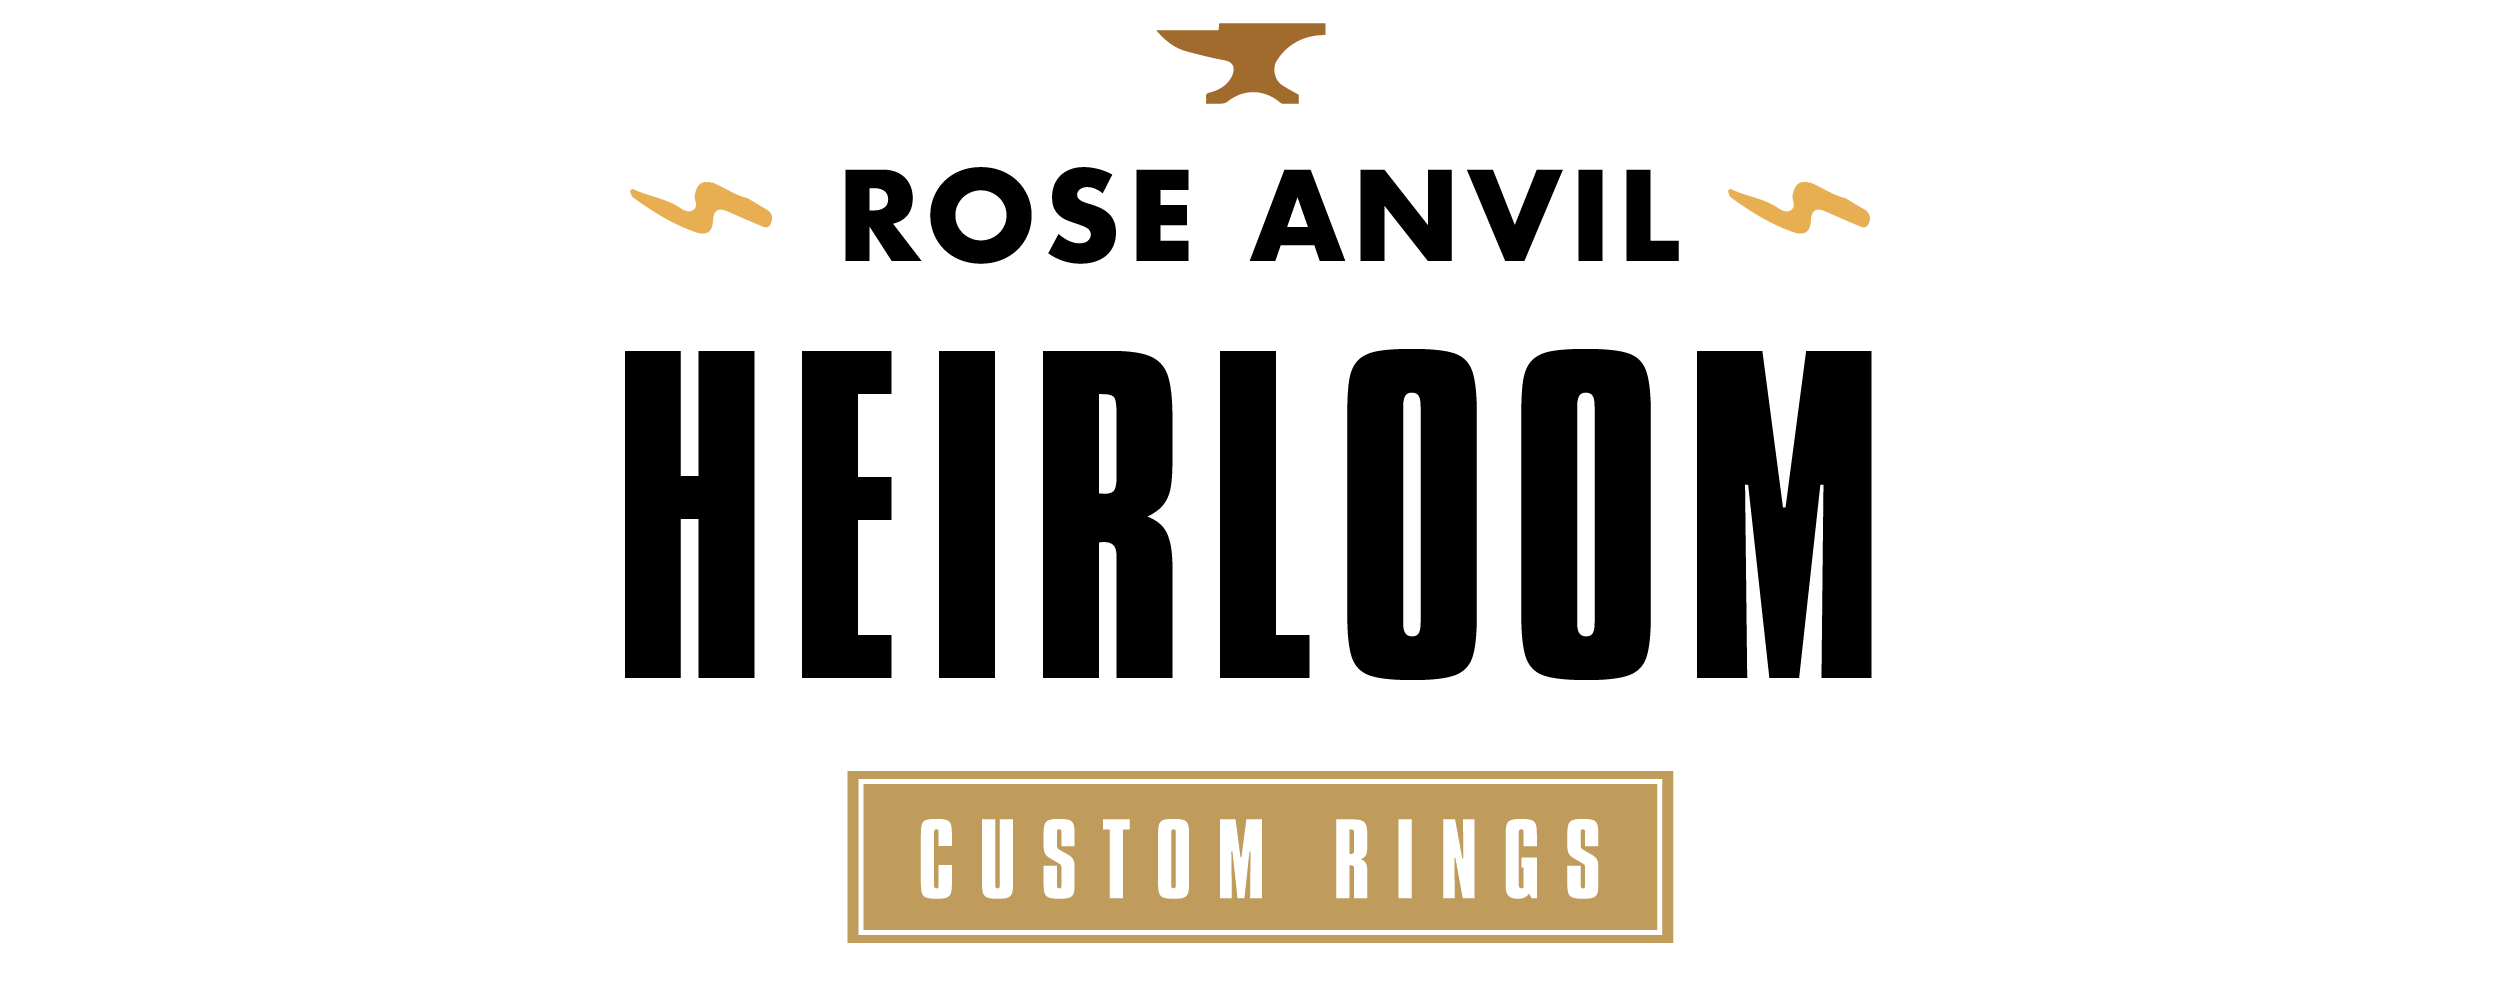 $650 Heirloom Custom Ring